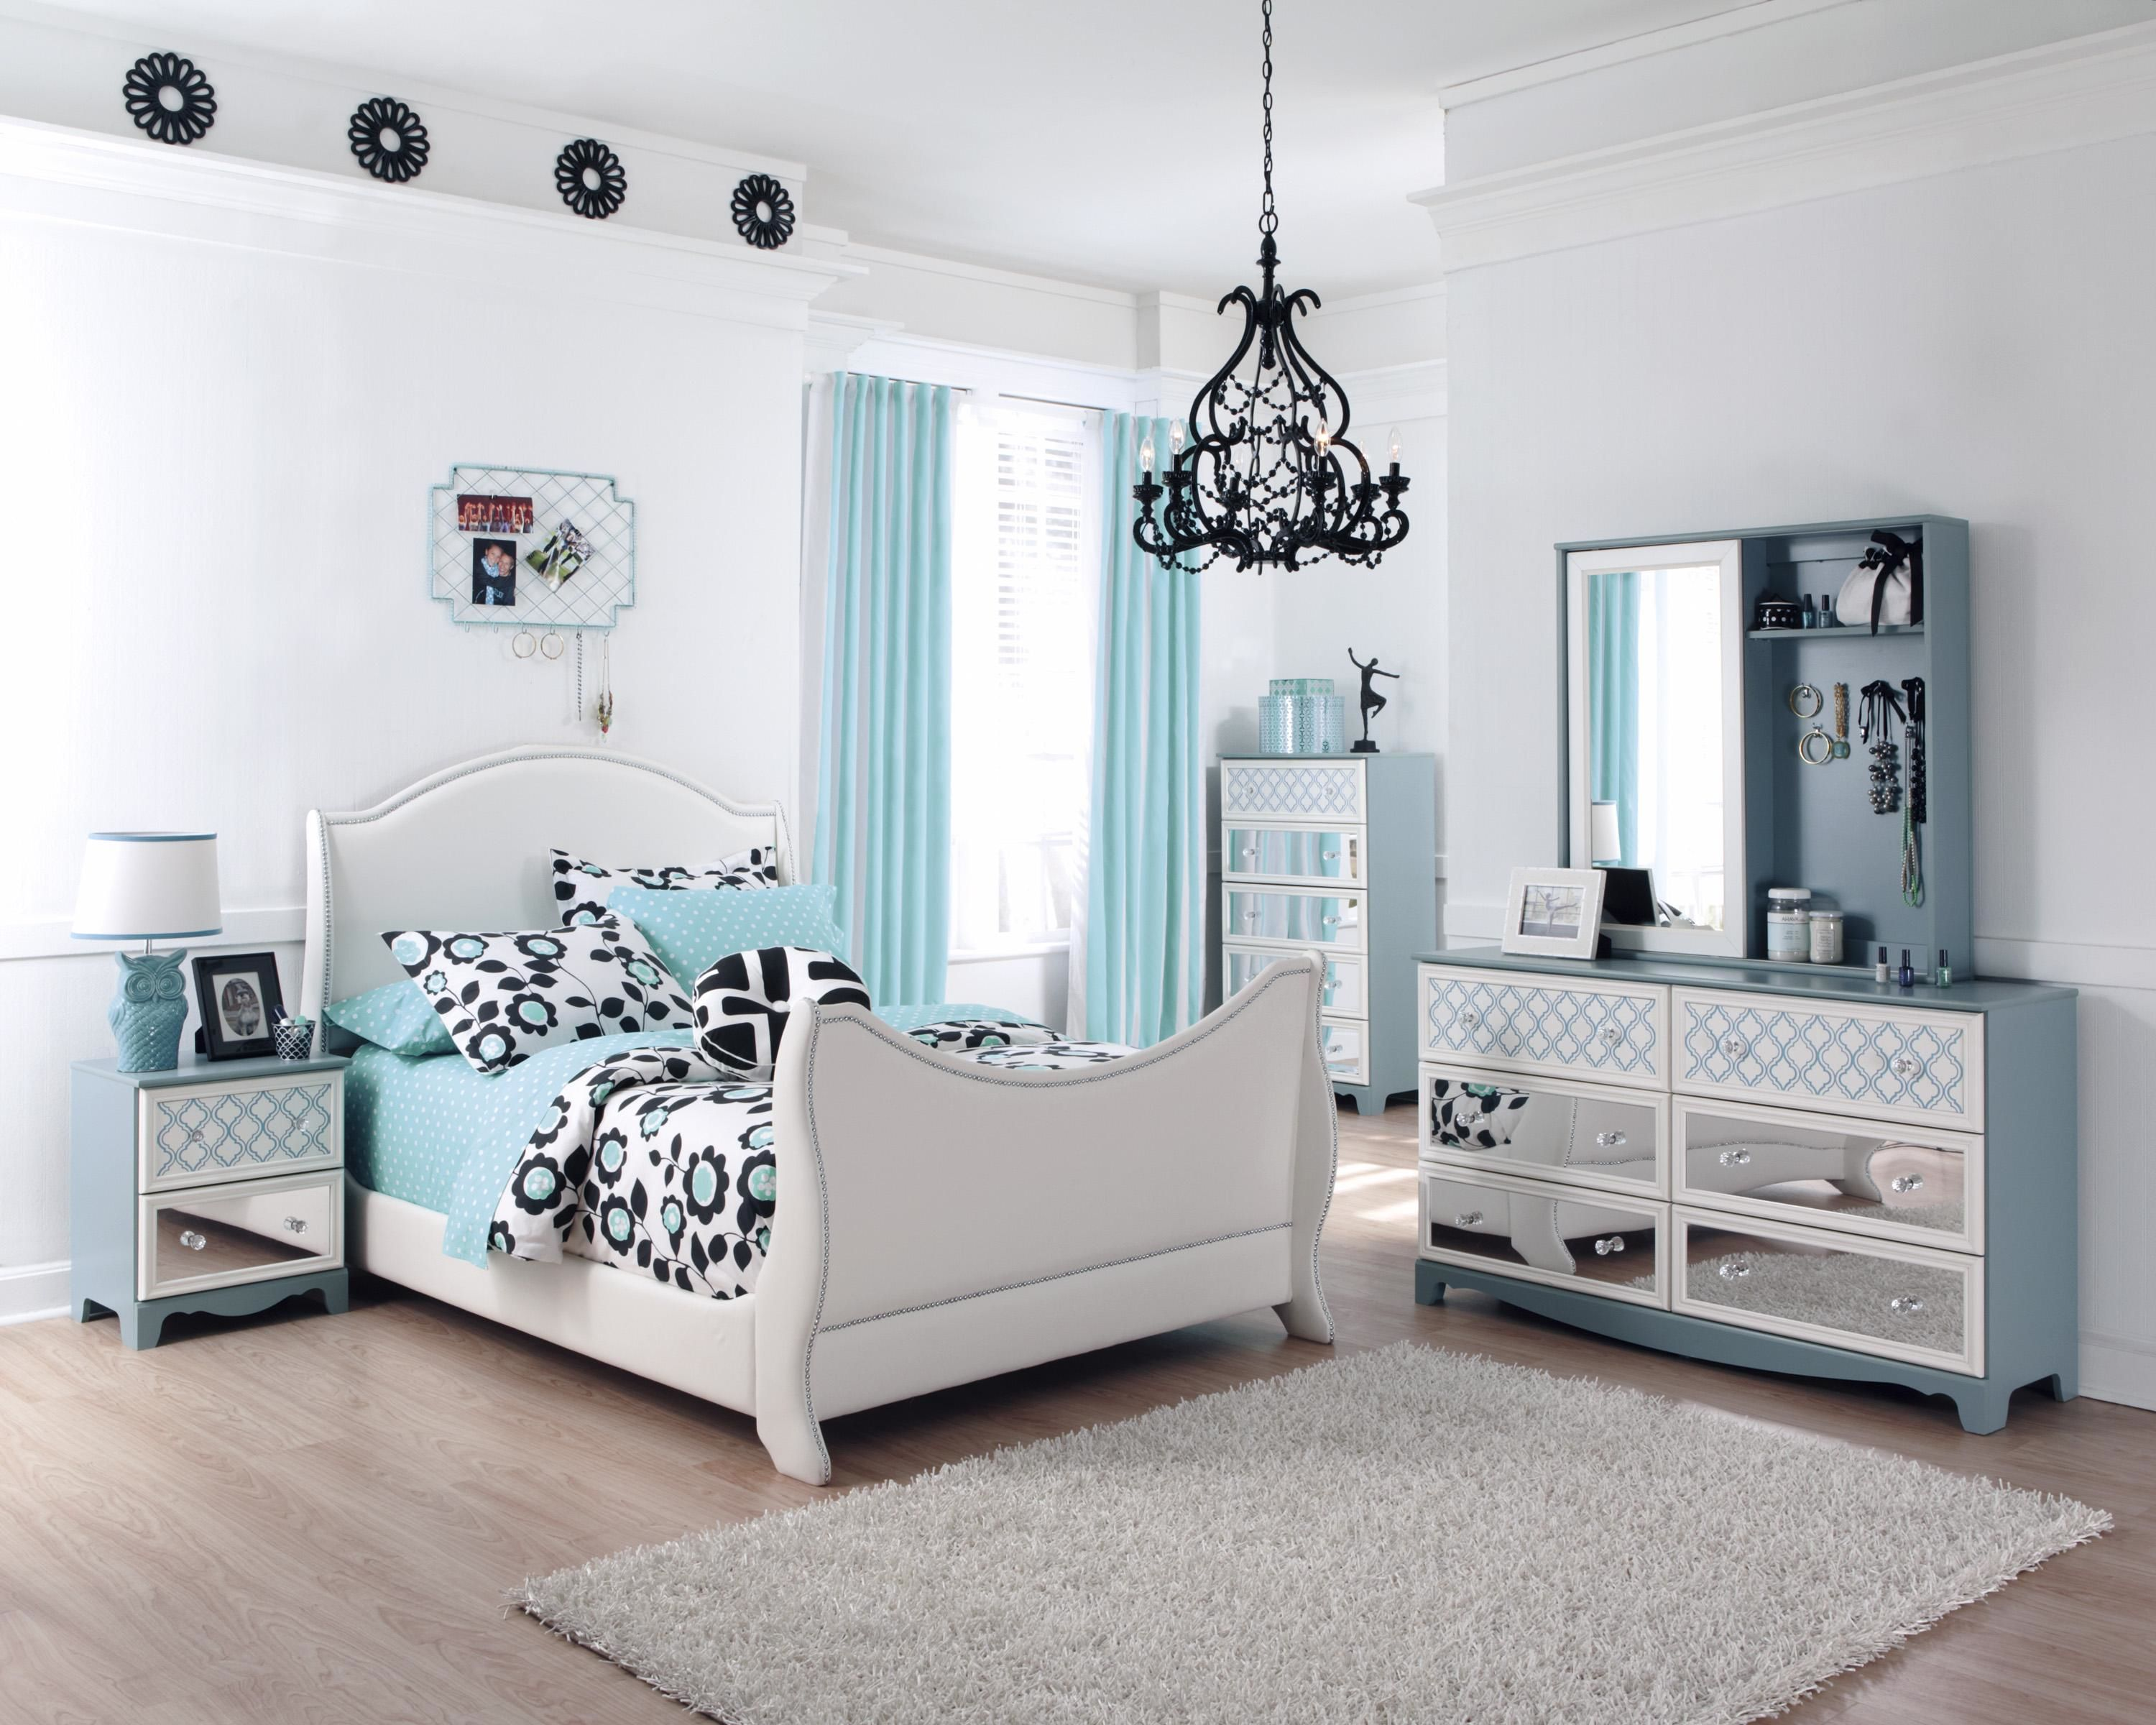 Bedroom Decor Fluffy Carpet Tiles With White Wall Colors